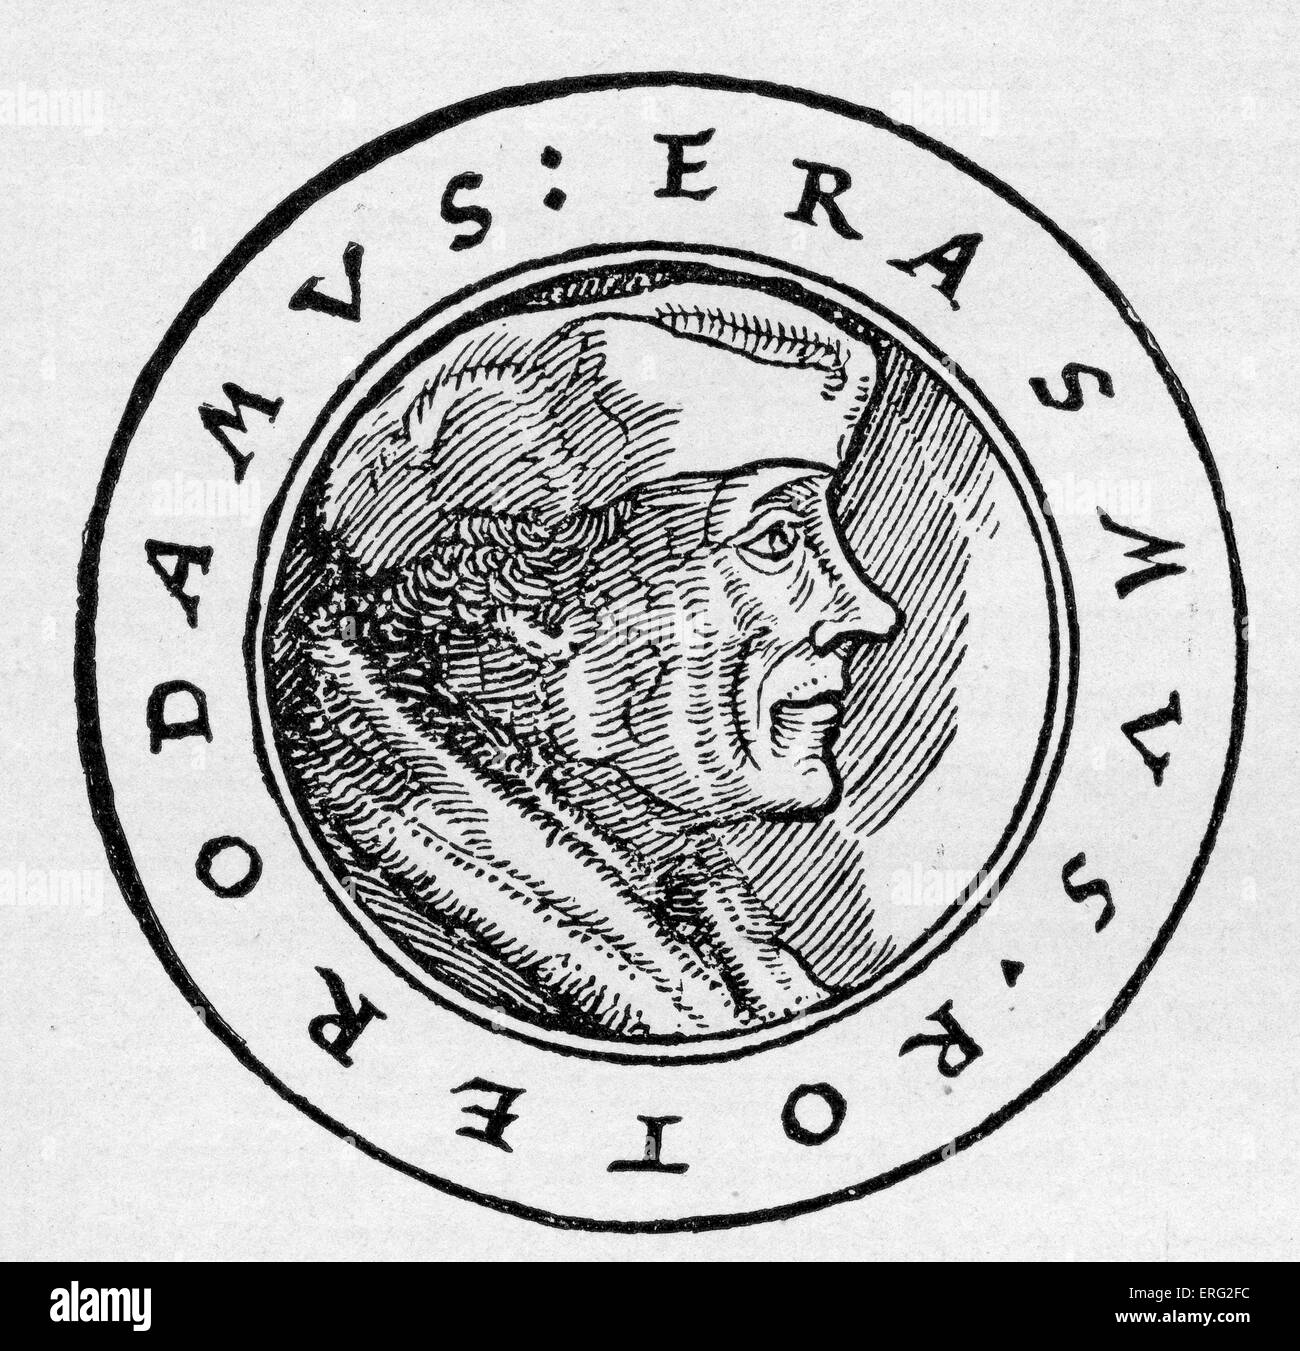 Erasmus von Rotterdam Dutch renaissance humanist and theologian 27 October 1466 - 12 July 1536.  After a German - Stock Image